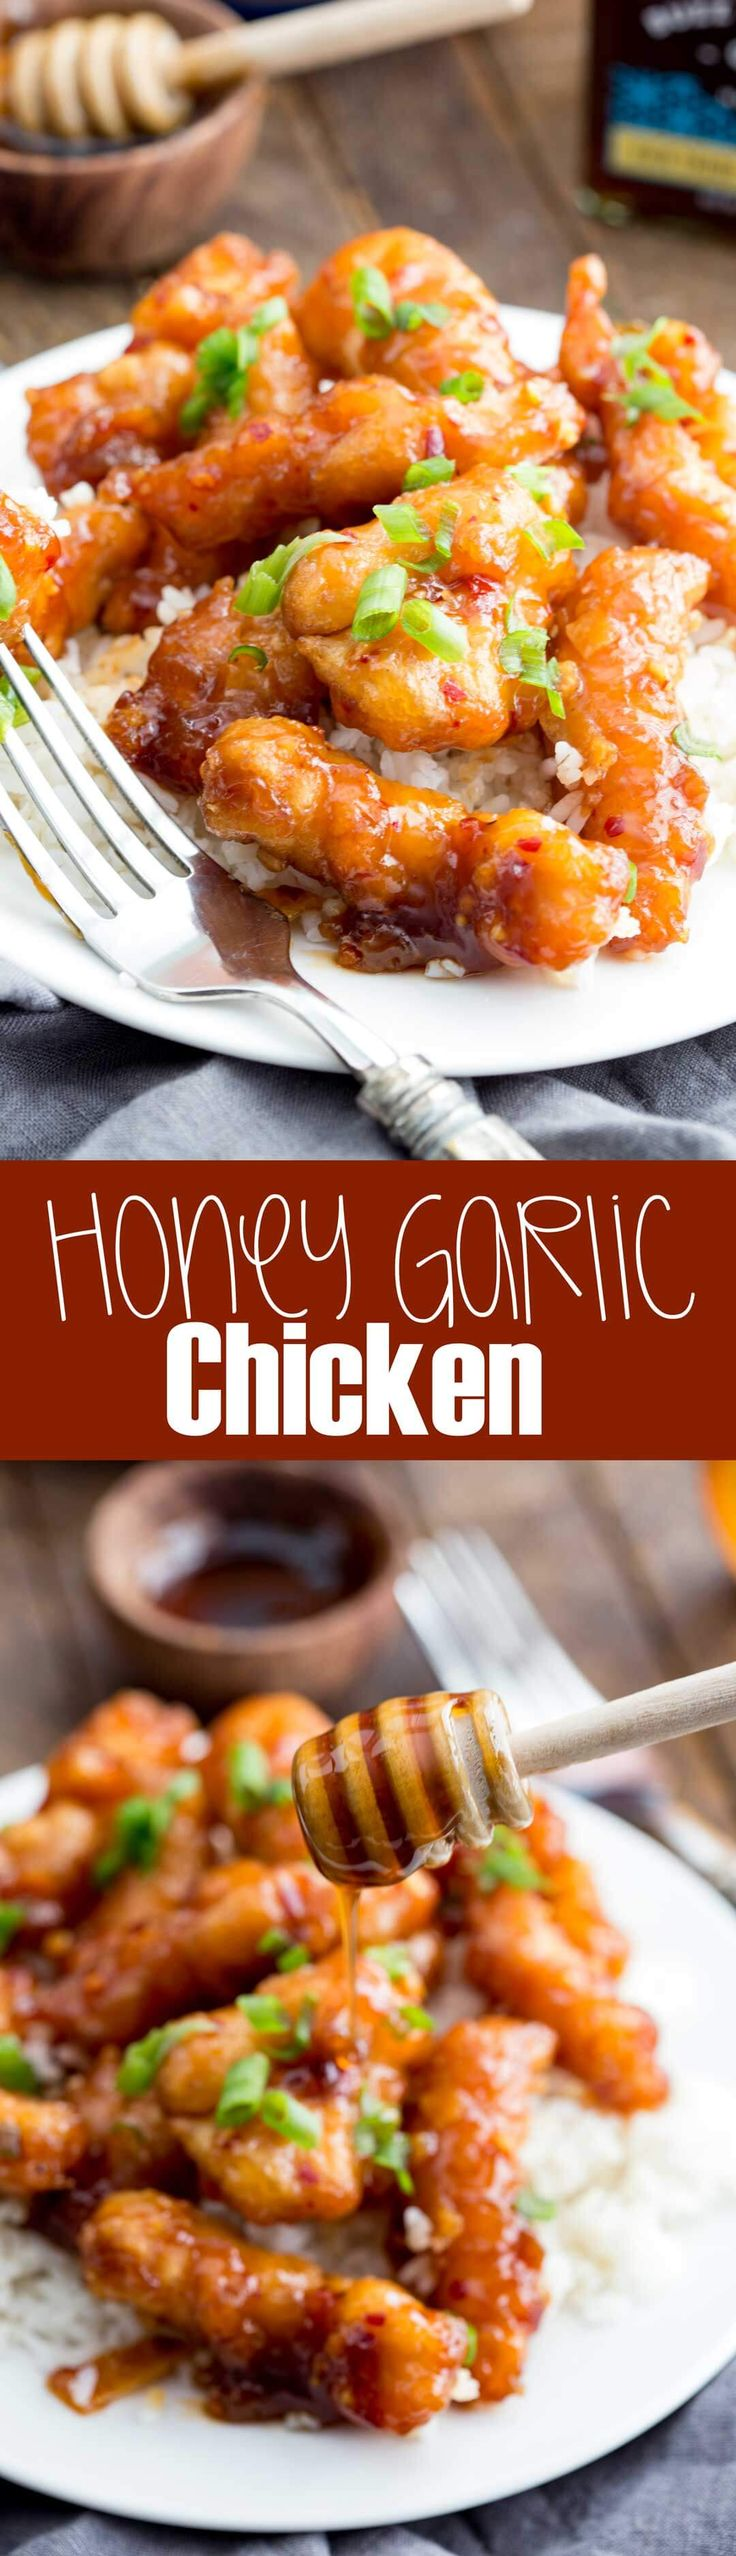 stick honey chicken is the bomb i served this to guests and they went insane